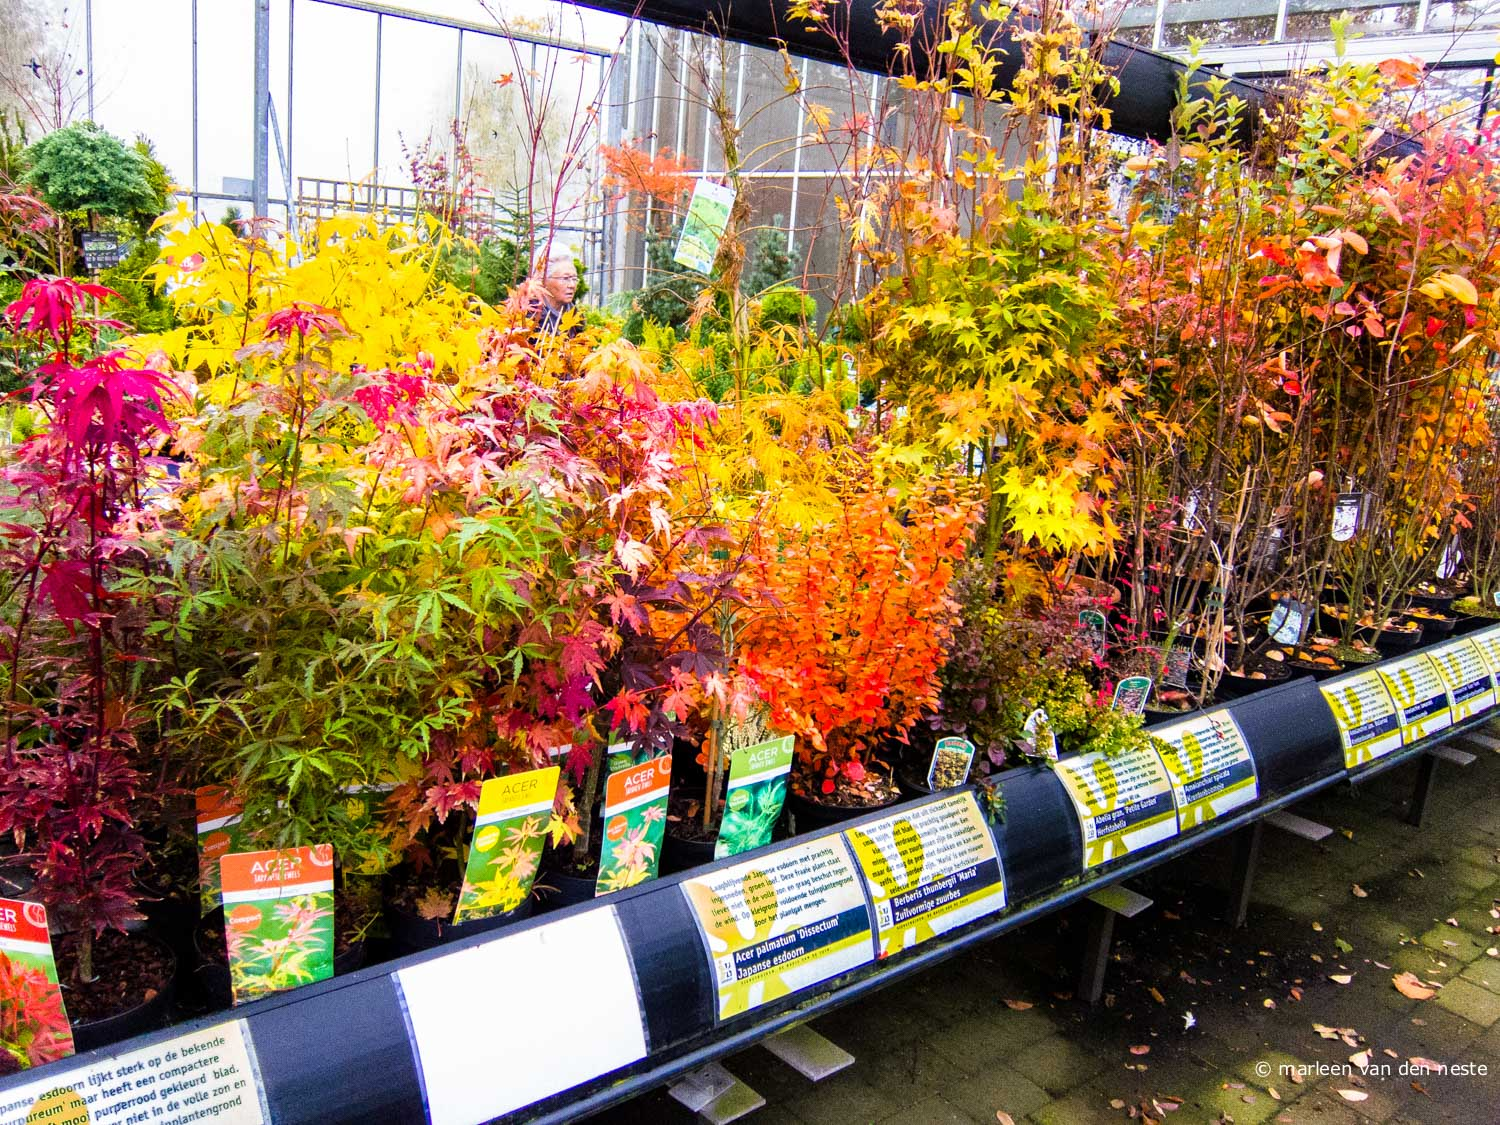 Fall foliage in a garden center in Numansdorp.